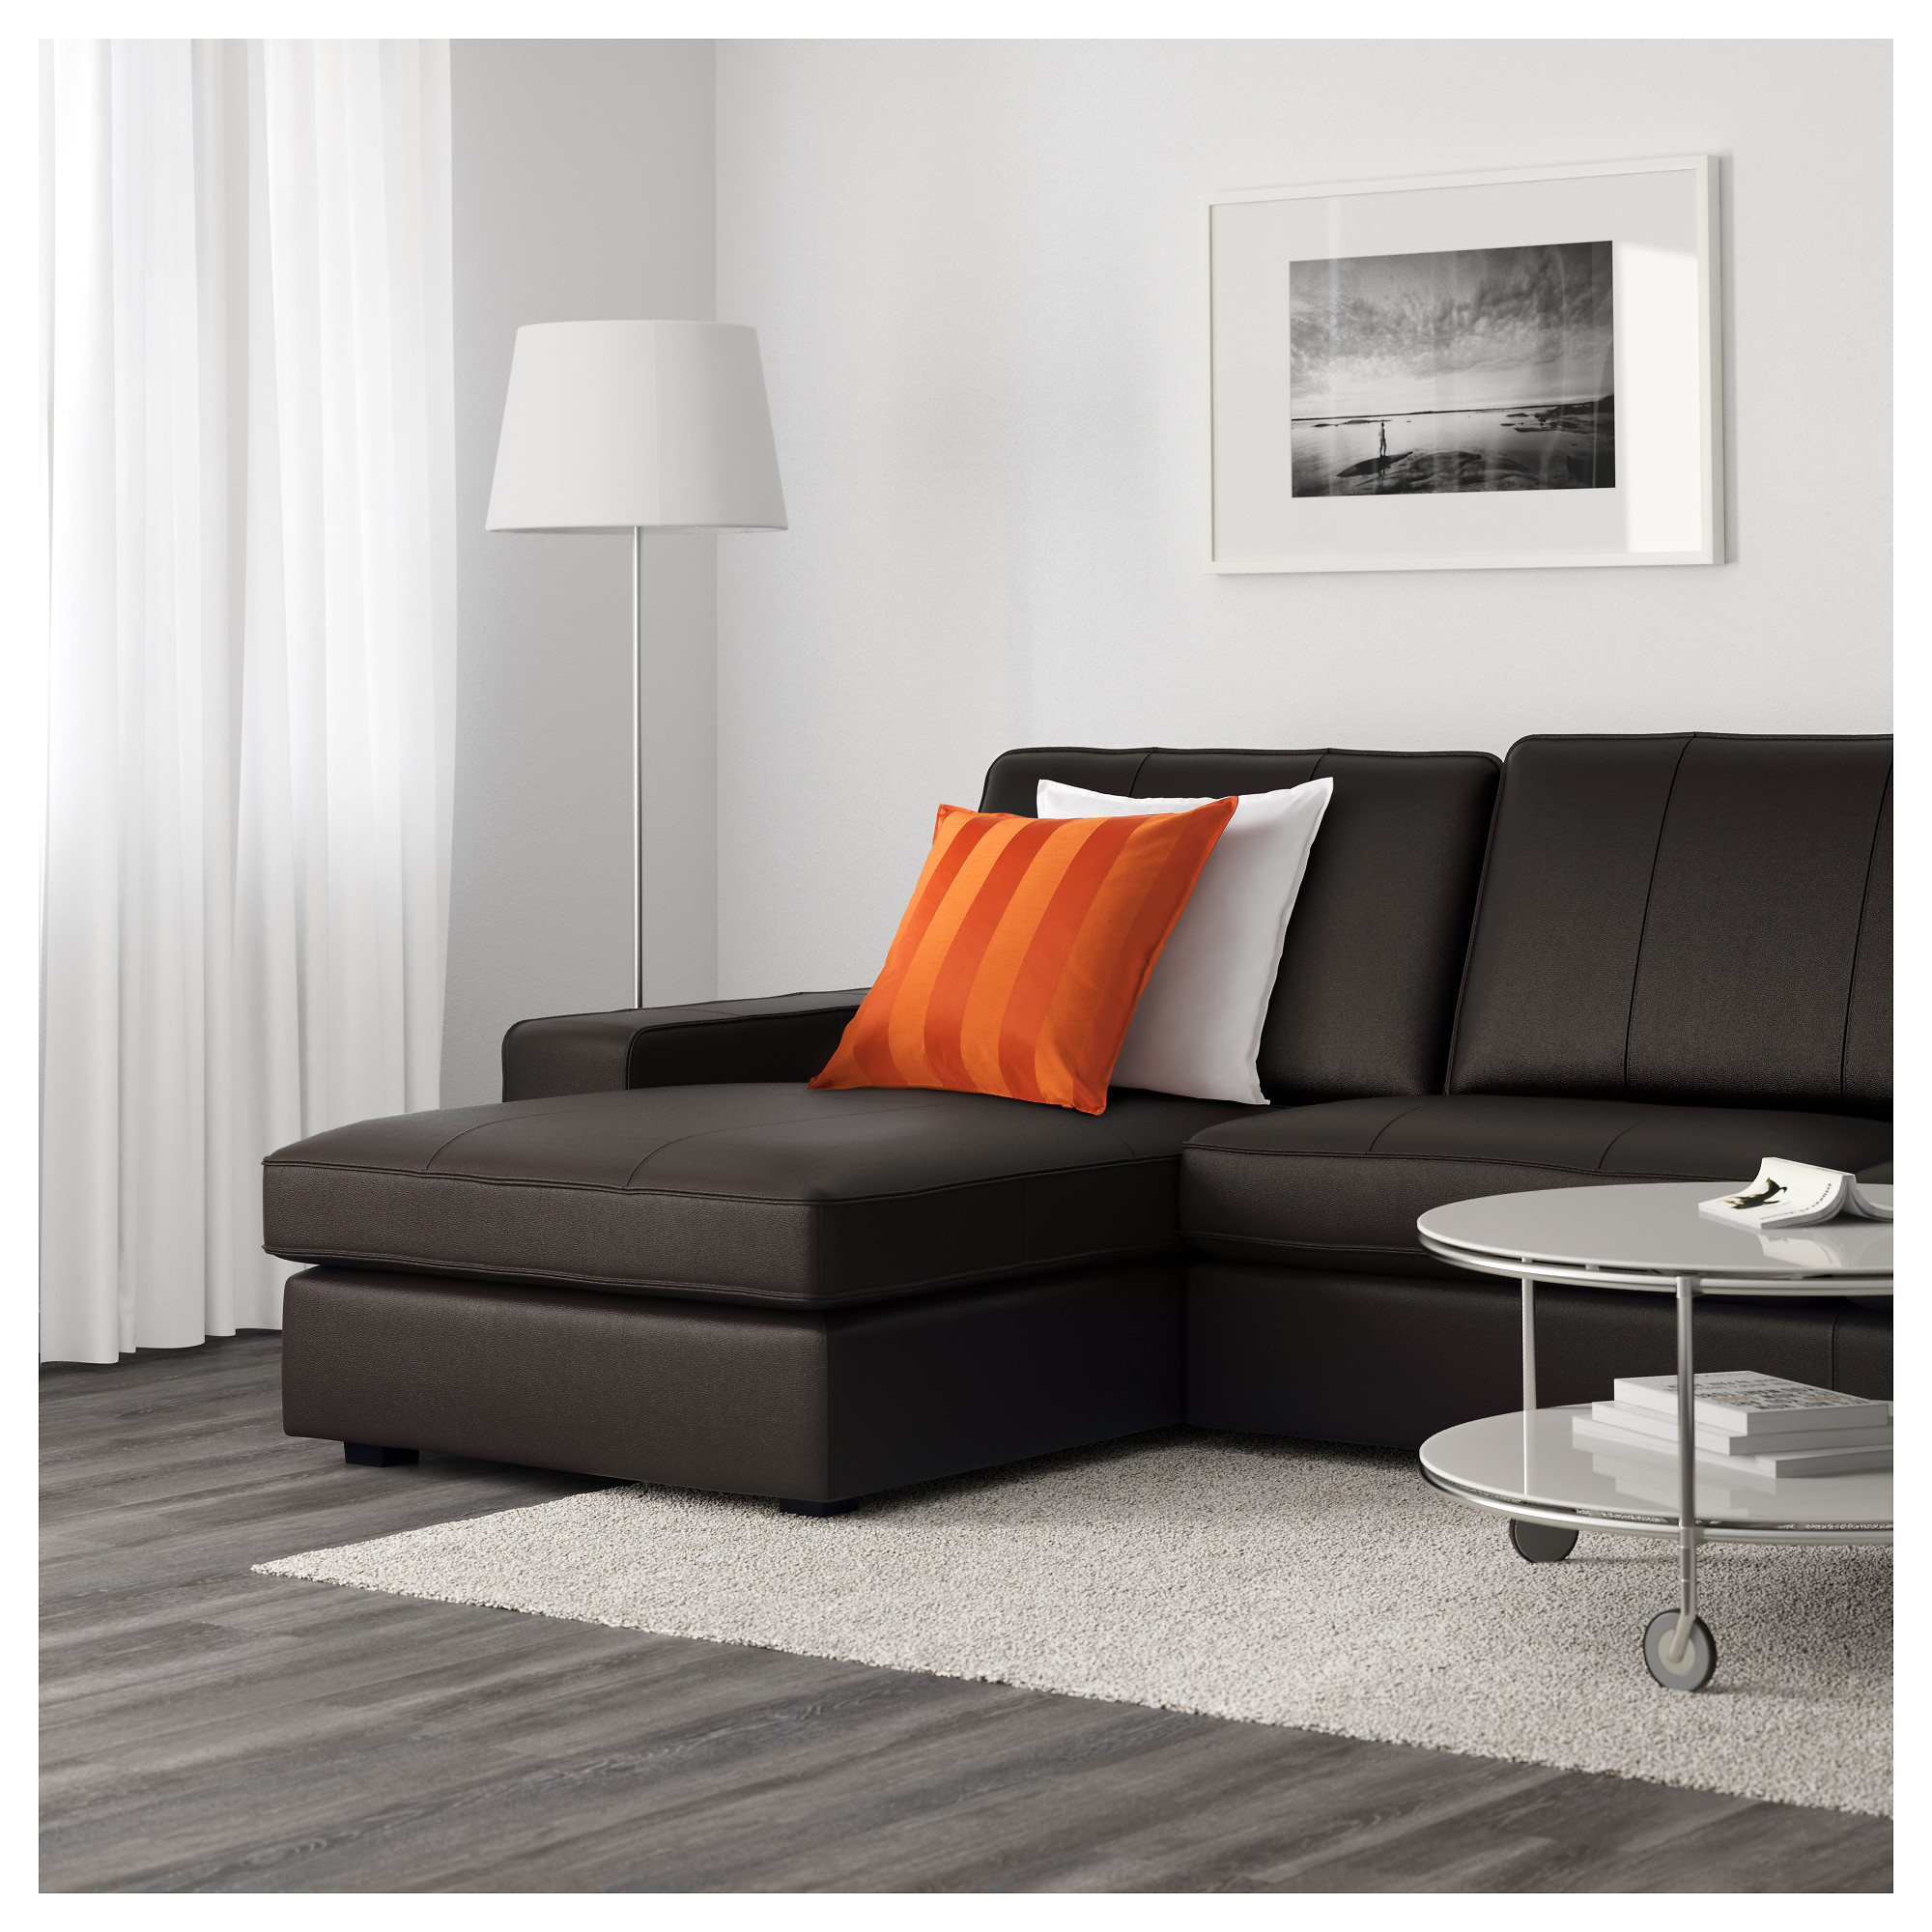 KIVIK Sectional, 4 Seat   With Chaise/Grann/Bomstad Dark Brown   IKEA